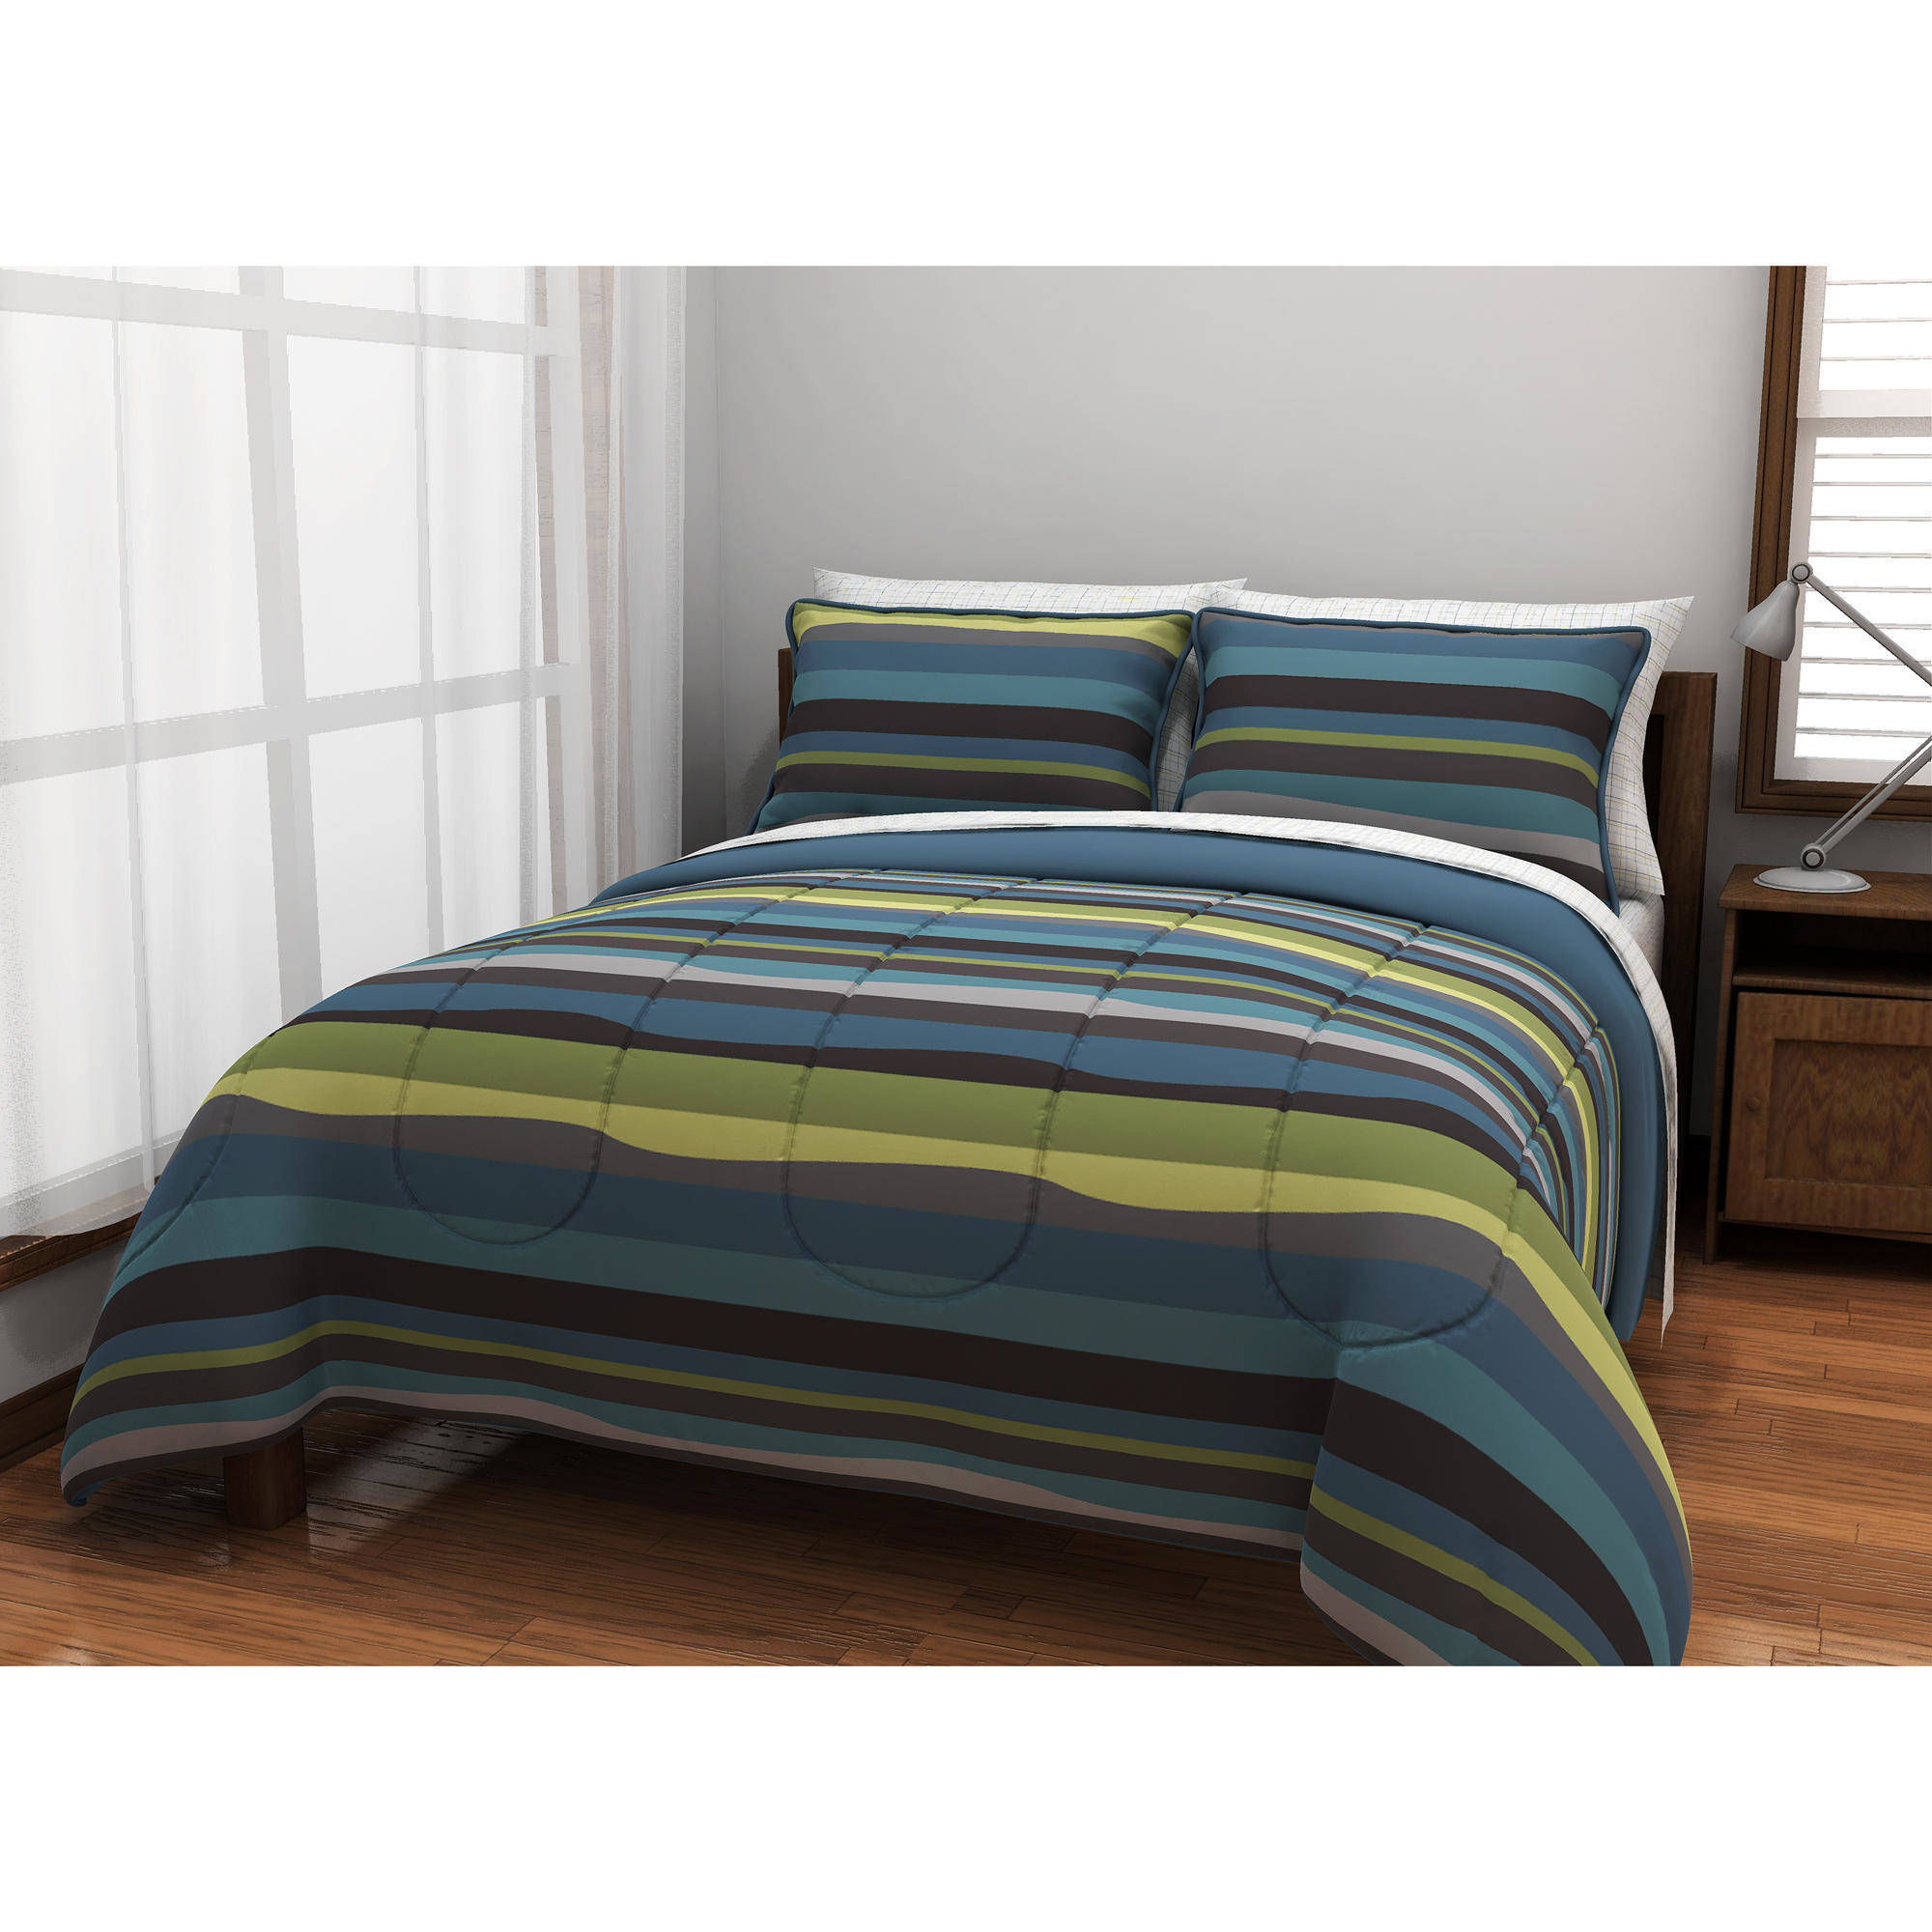 American Original Blue Pacific Stripe Reversible Complete Bedding Set Green Bed in a Bag - Walmart.com